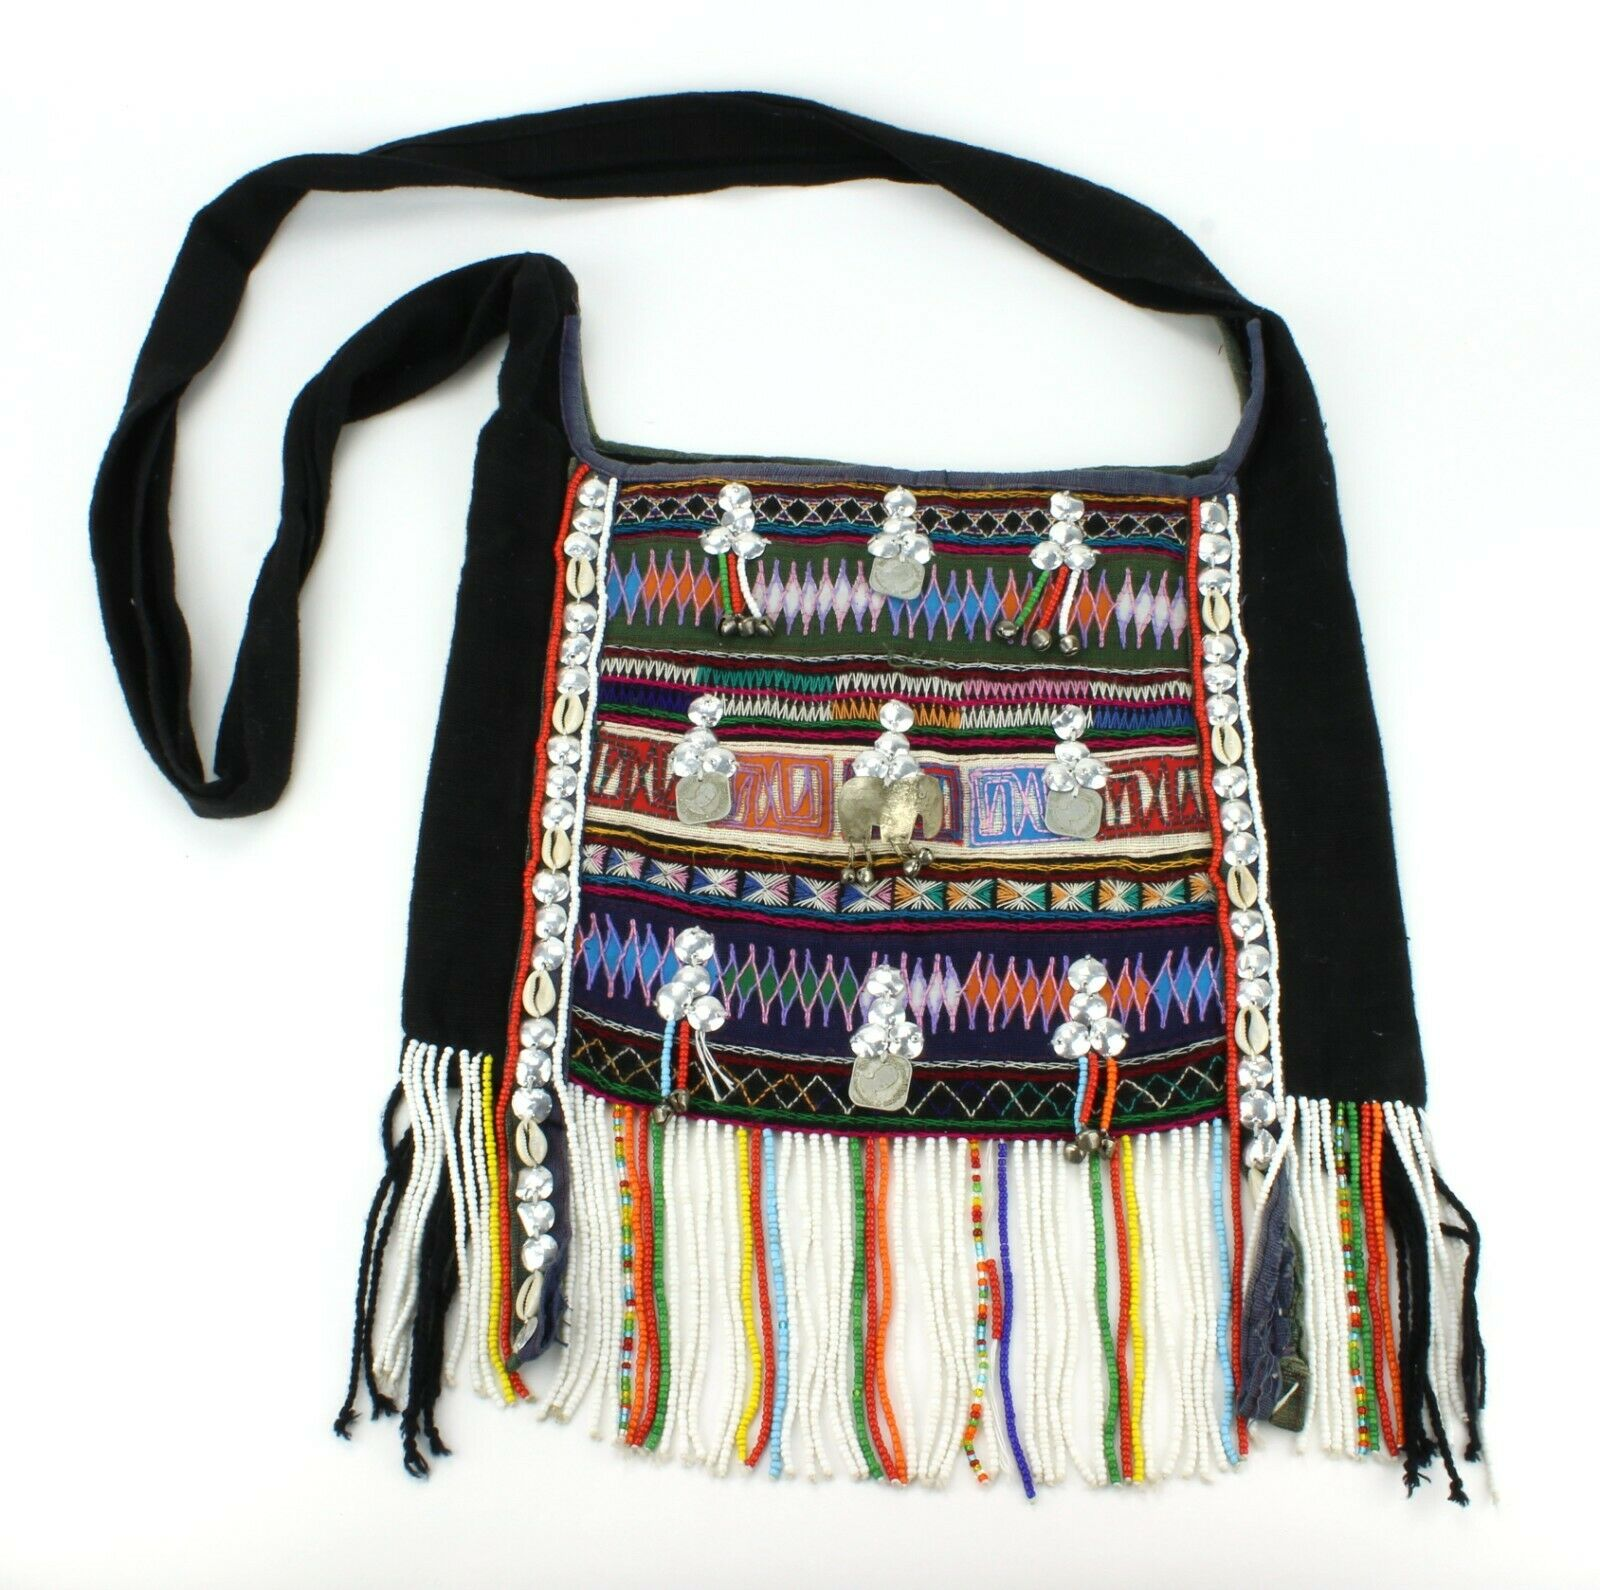 Vintage African Tribal Bohemian Fringe Beaded Bag Purse Hand made Stitched (678)